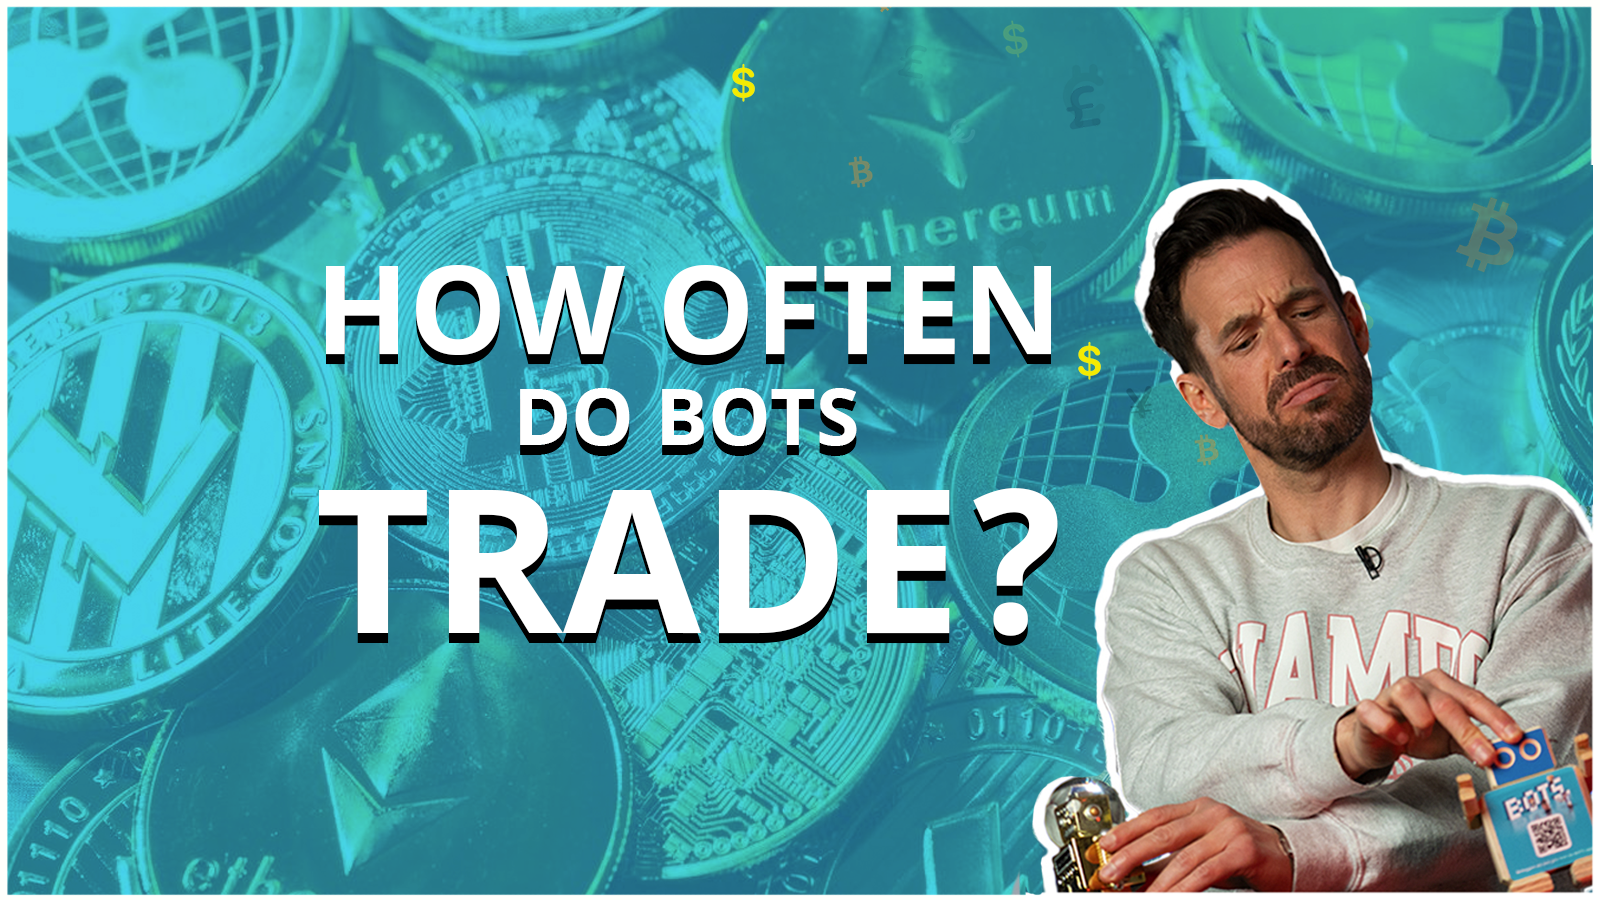 How often do BOTS trade cryptocurrencies? Here's what the expertsays